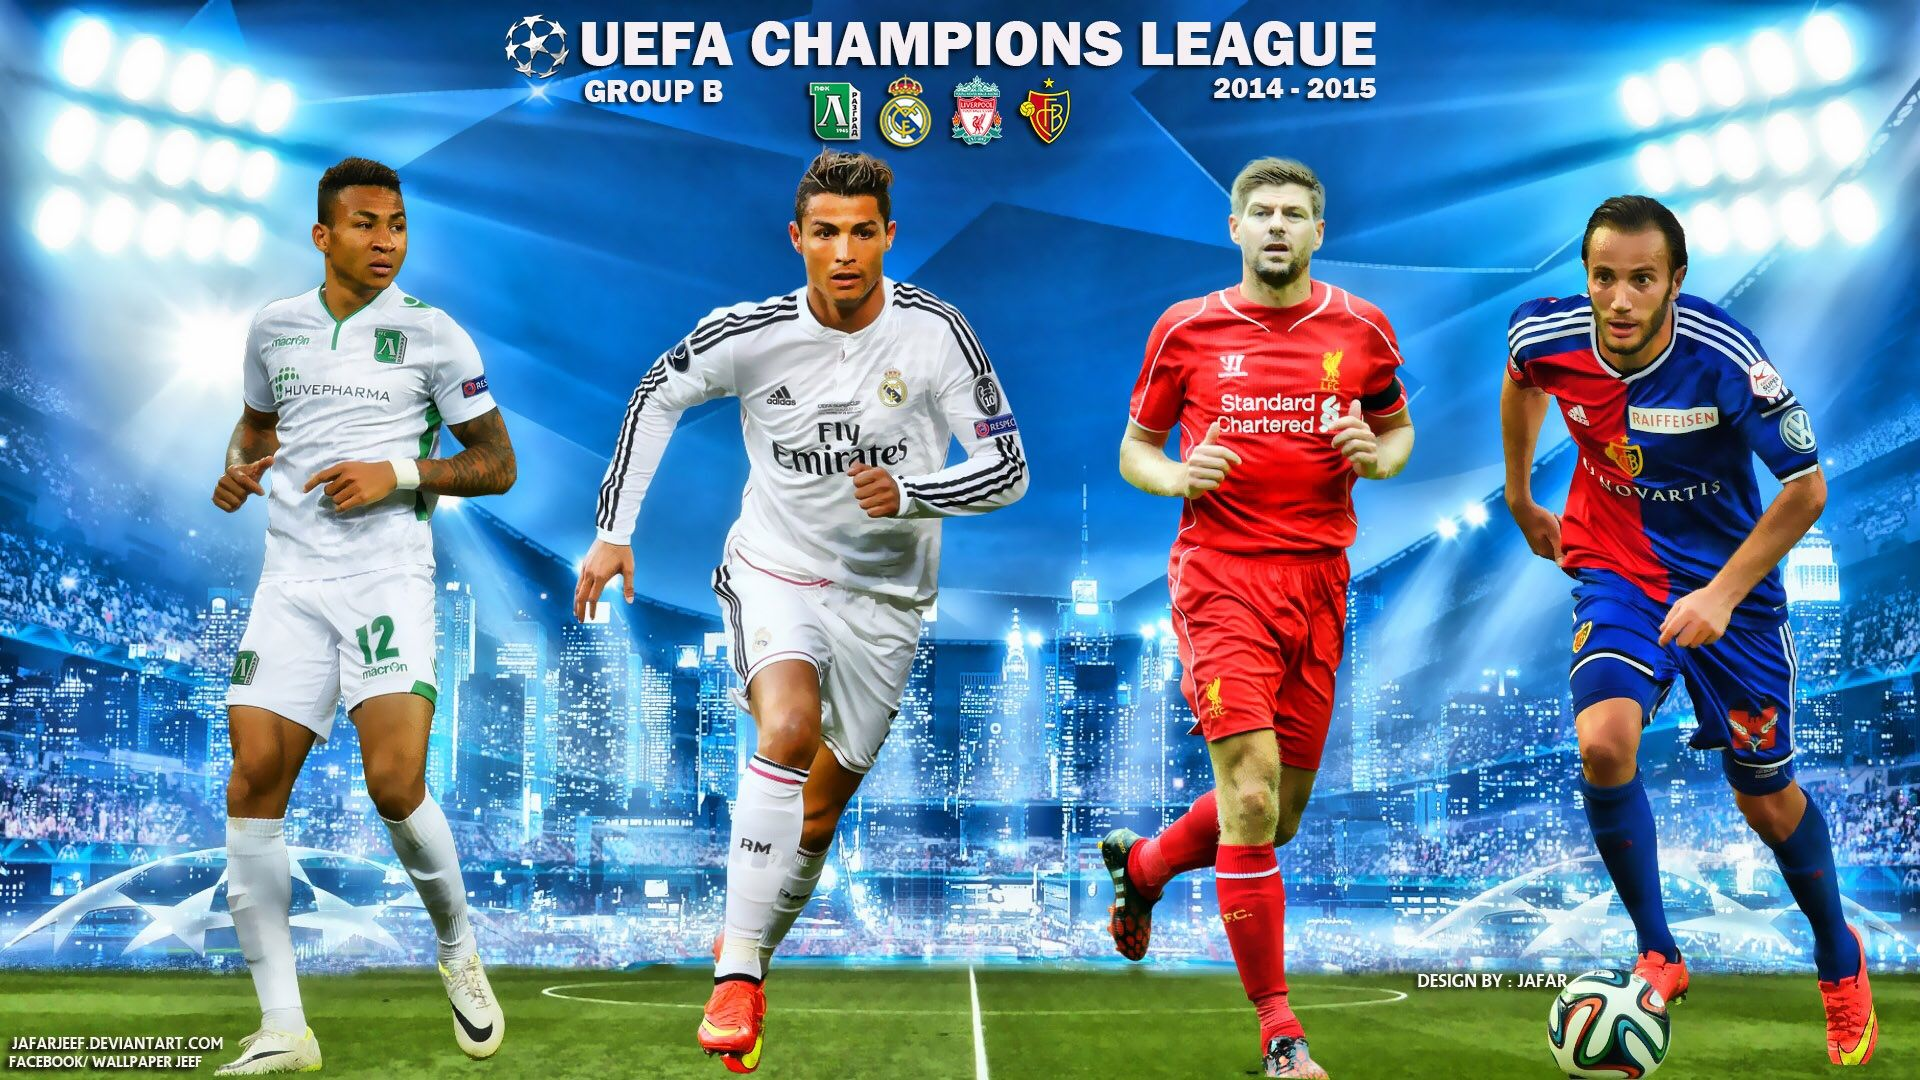 Uefa Champions League 2014 15 Football Hd Wallpapers 1080p Phan